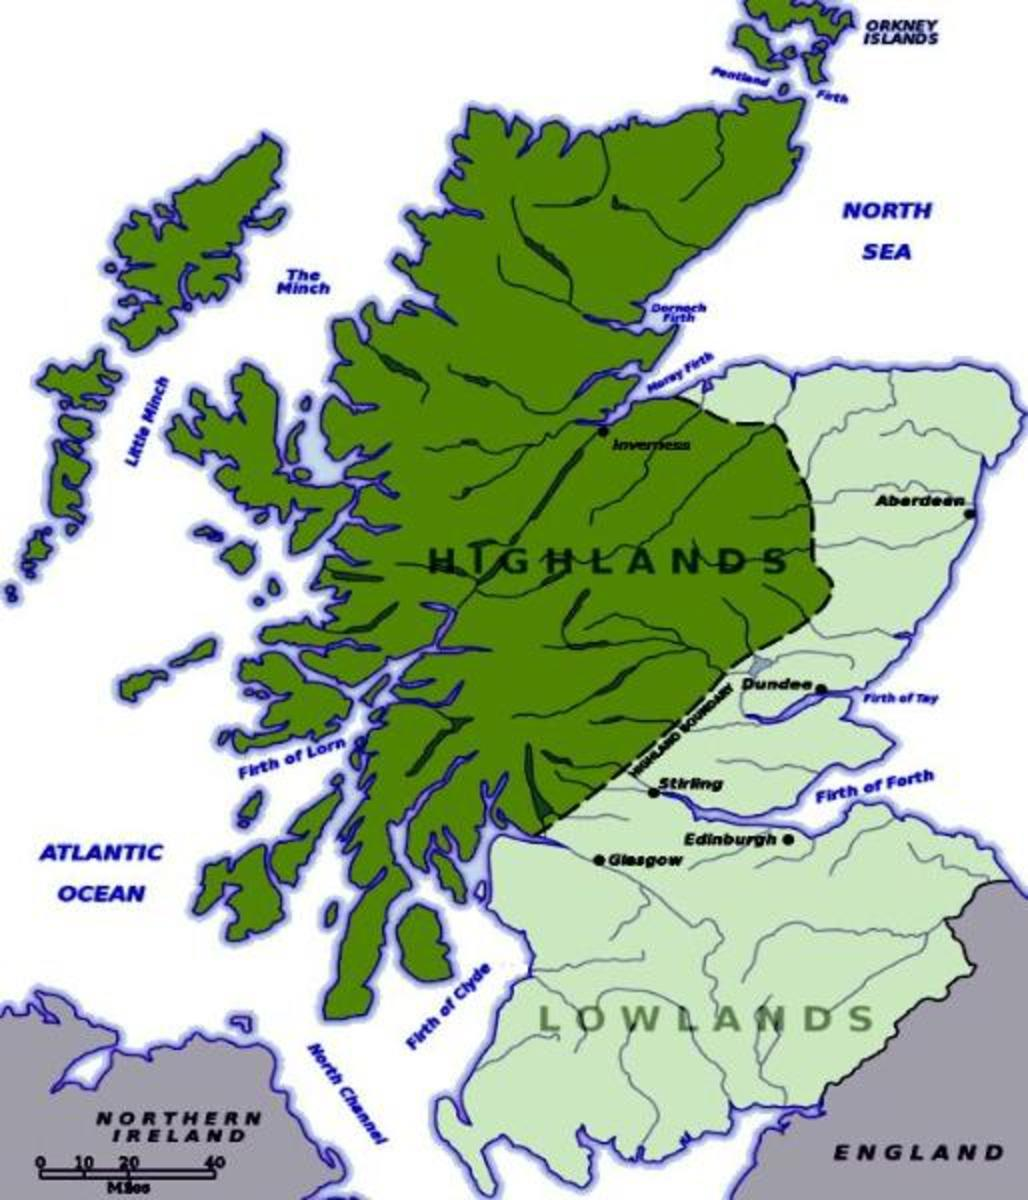 Map of Scotland/Source: http://www.harpersinmissouri.com/Scottish-Highlands.html